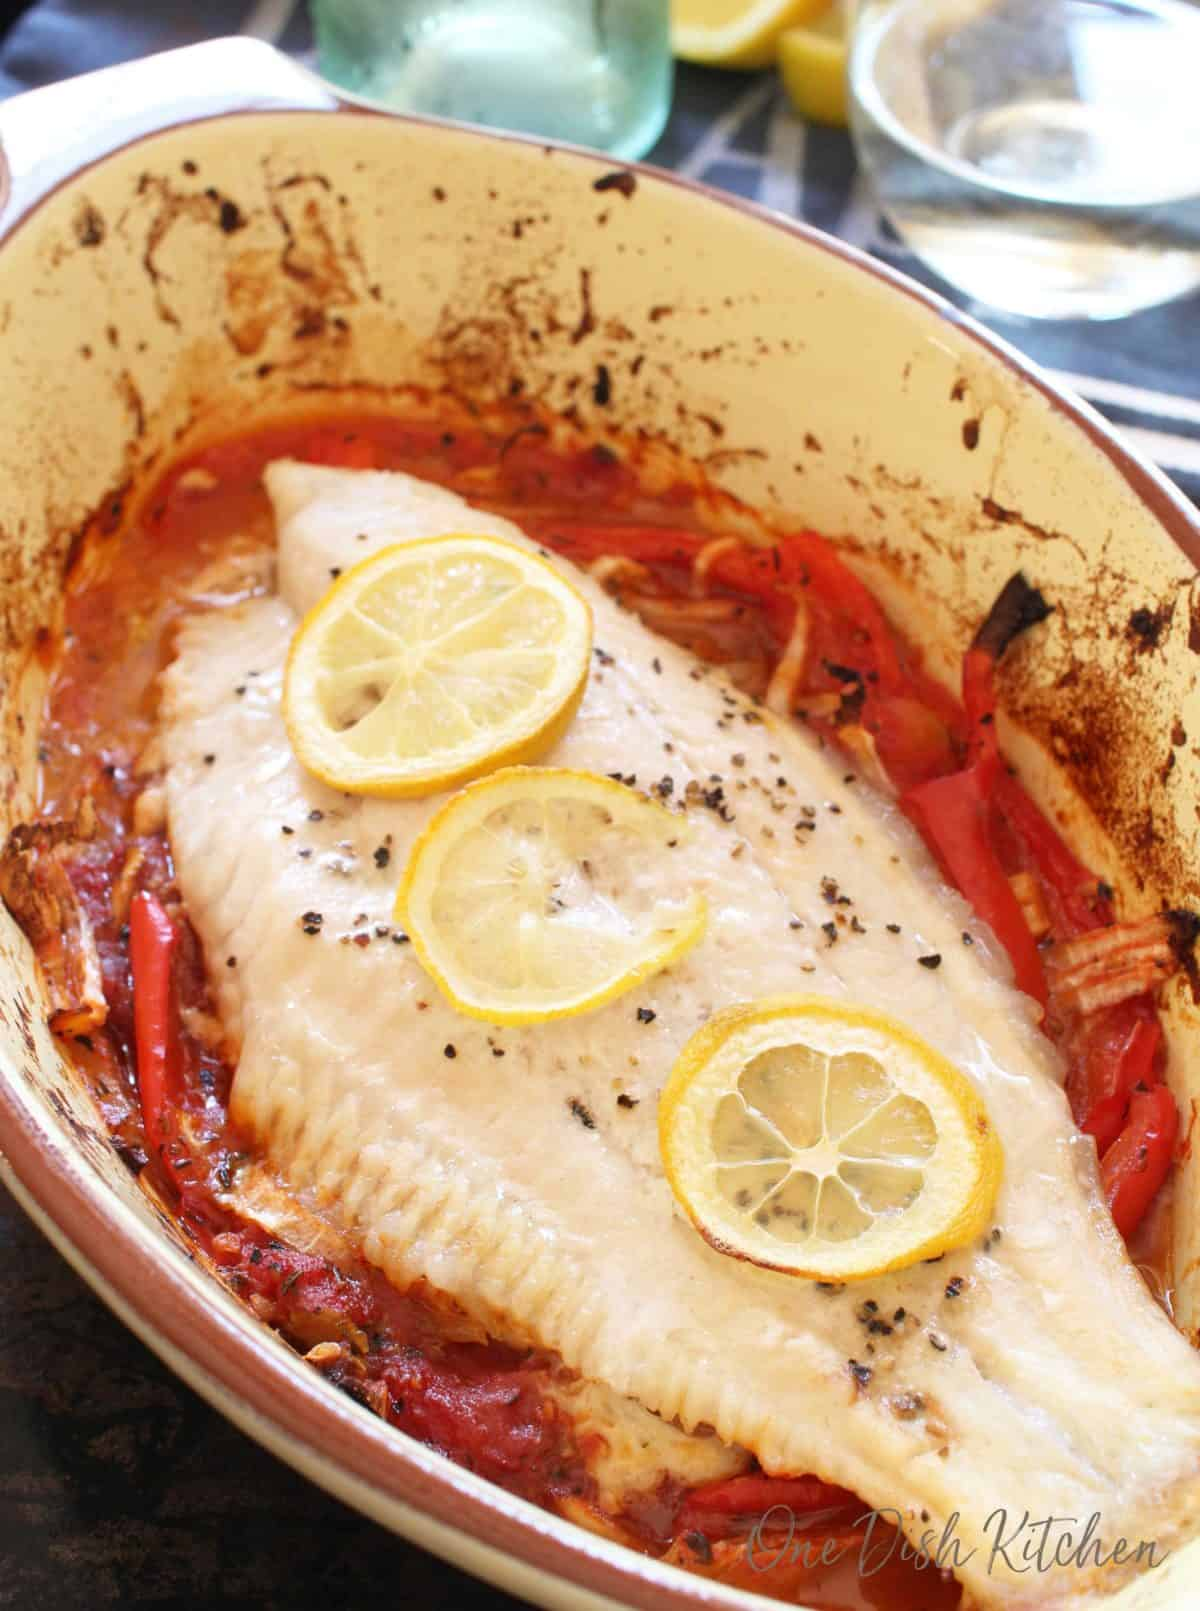 Closeup of catfish in a baking dish garnished with three lemon wheels and pepper flakes baked on a bed of red peppers and onions and there is a glass of white wine in the background.